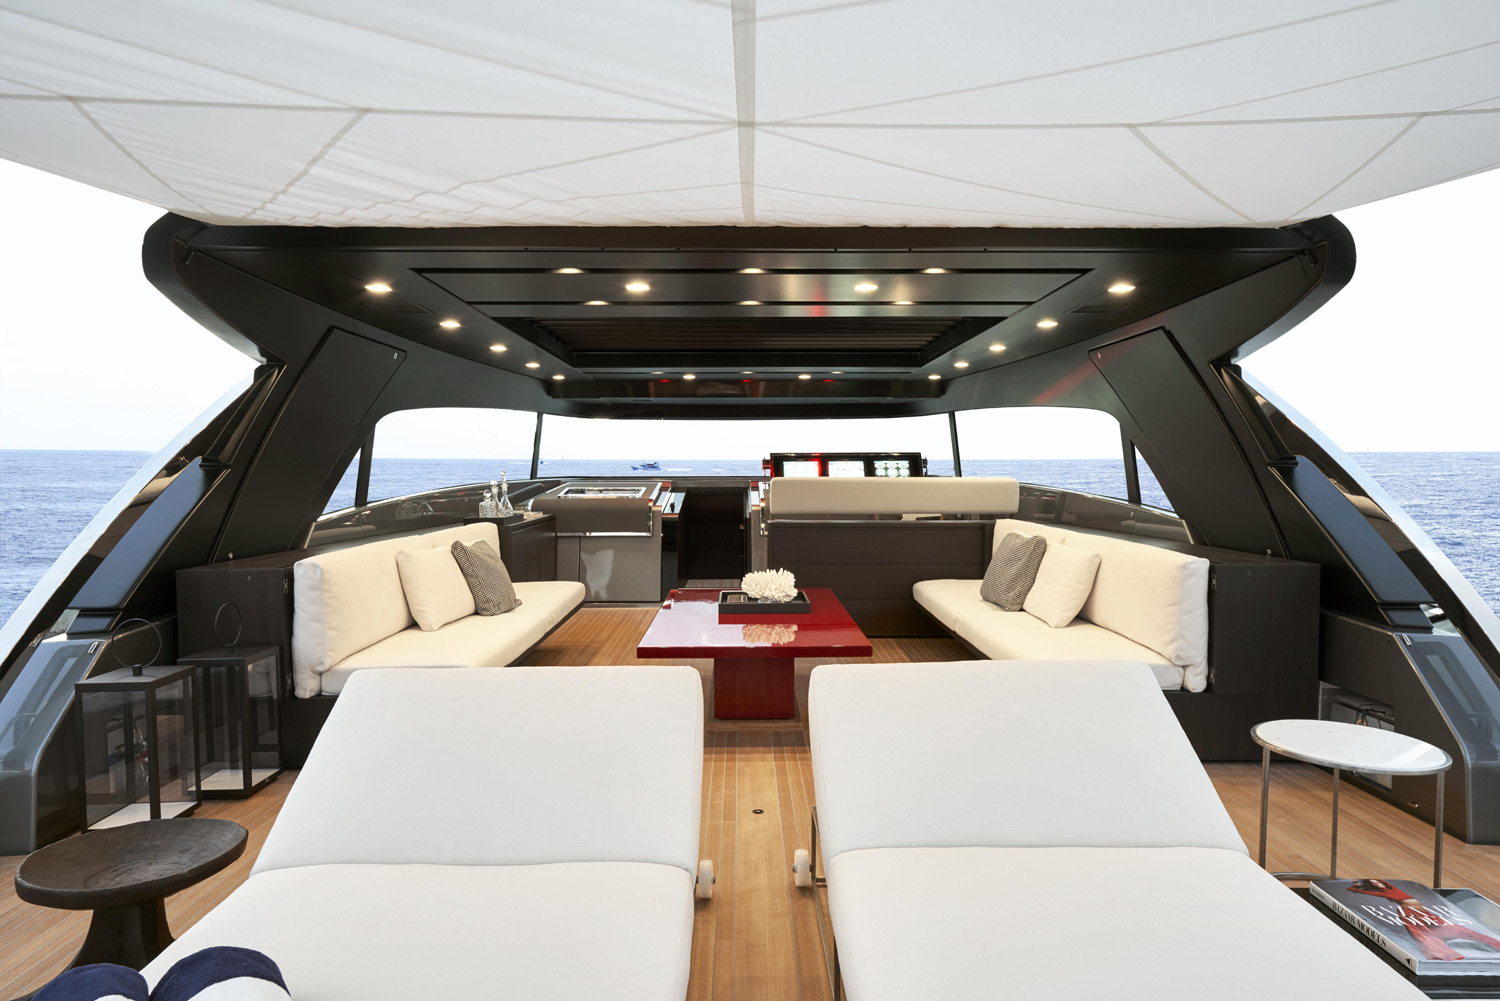 Sanlorenzo SX88 yacht designed by Piero Lissoni